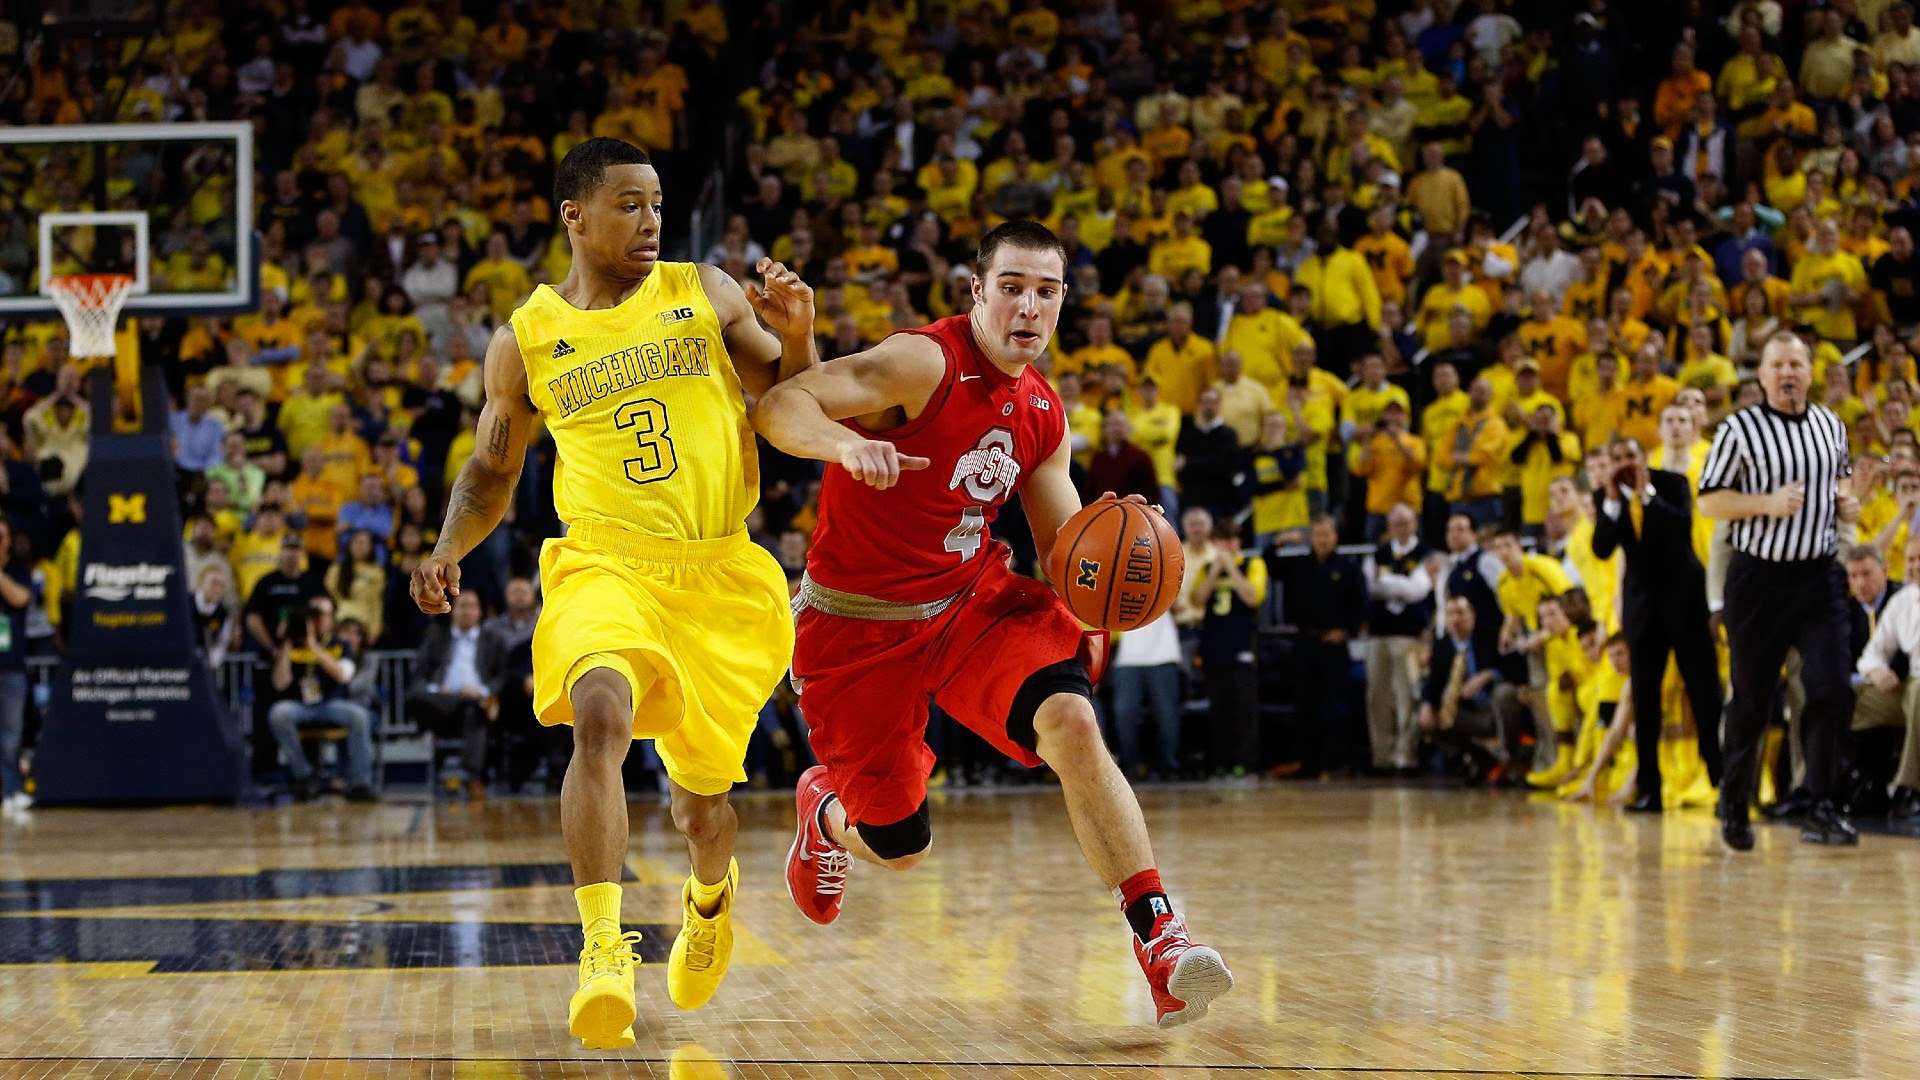 Michigan vs. Ohio State basketball: Greatest moments, matchups and records ahead of Sunday's top-five showdown